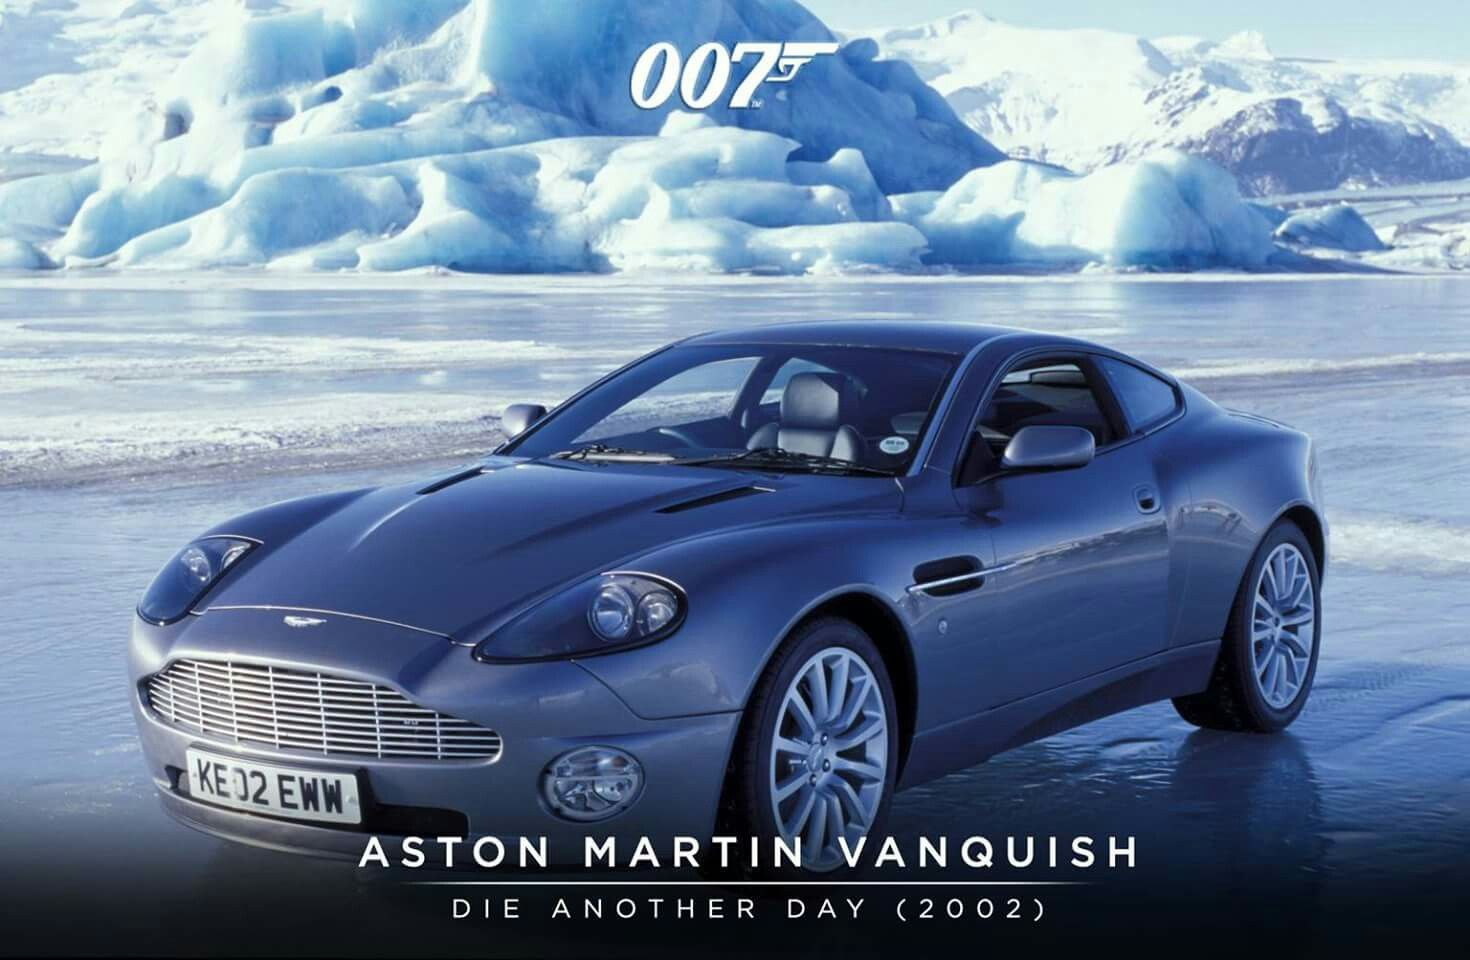 aston martin vanquish | 007: die another day | pinterest | aston